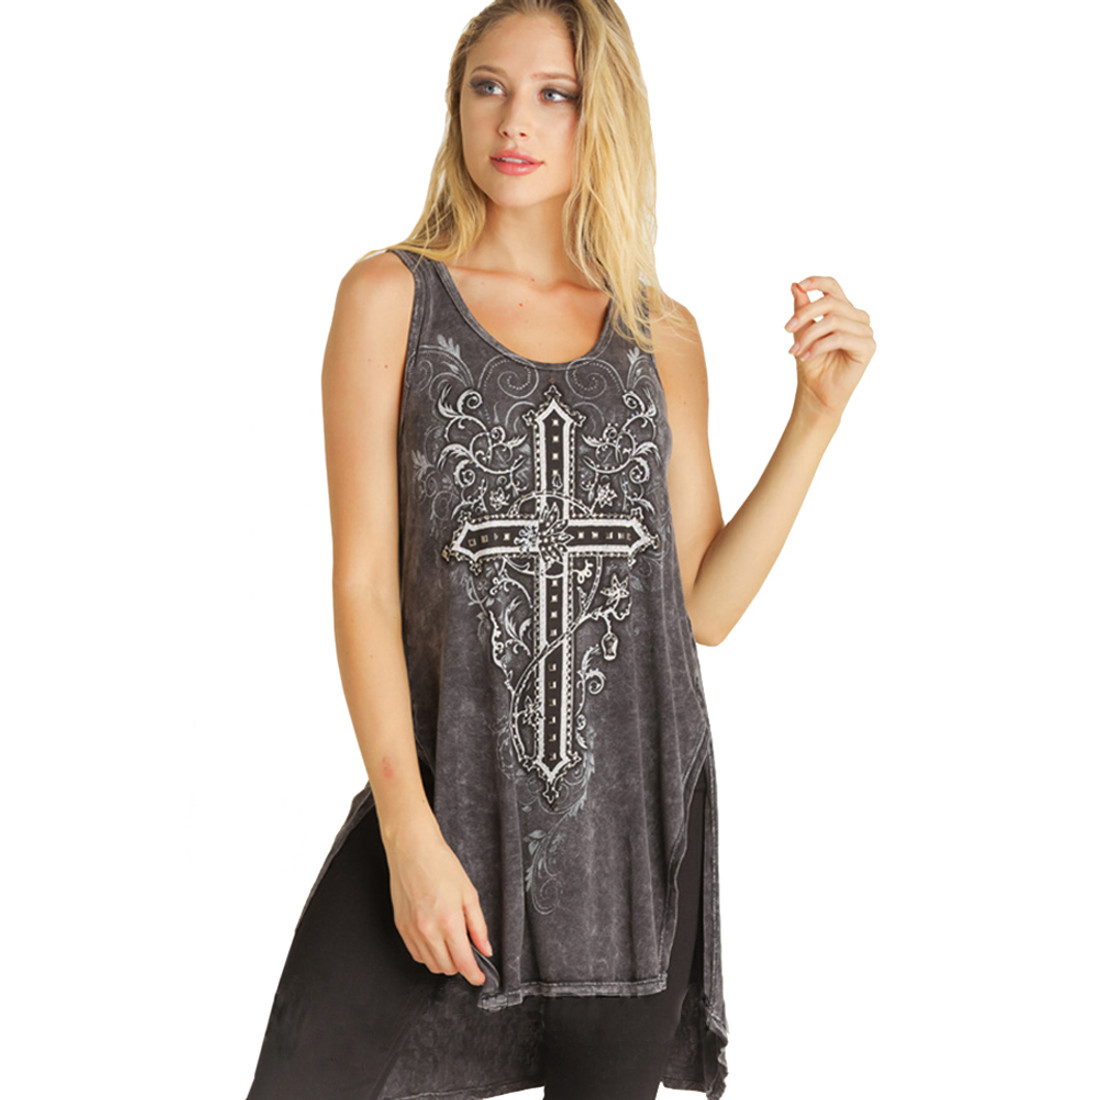 Vocal Apparel Mineral Washed Cross Design Tunic Tank Top